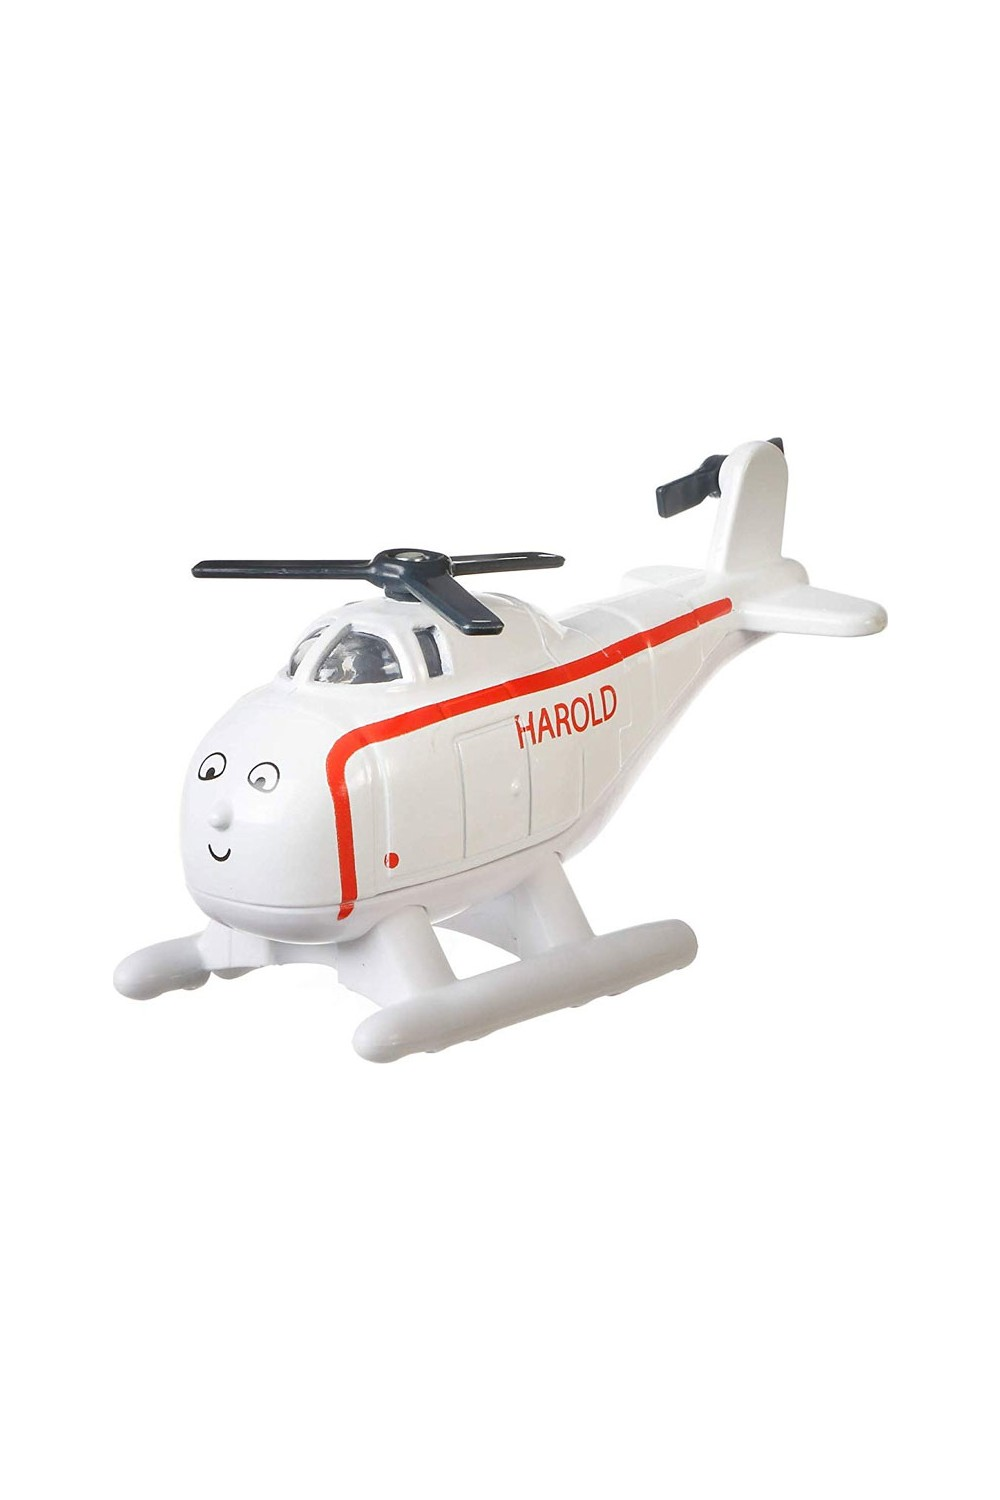 Thomas & Friends Helicopter Toy for Kids  GCK93-FXX04